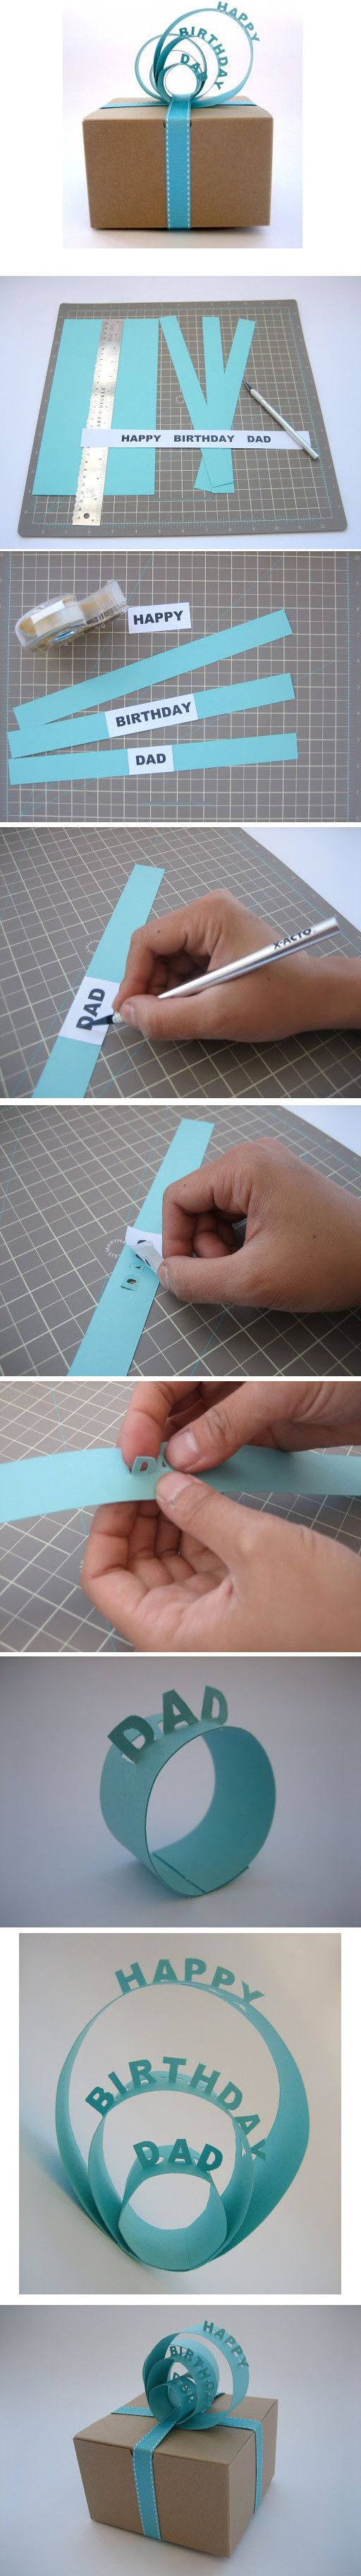 So cool diy pinterest messages paper gifts and diy paper